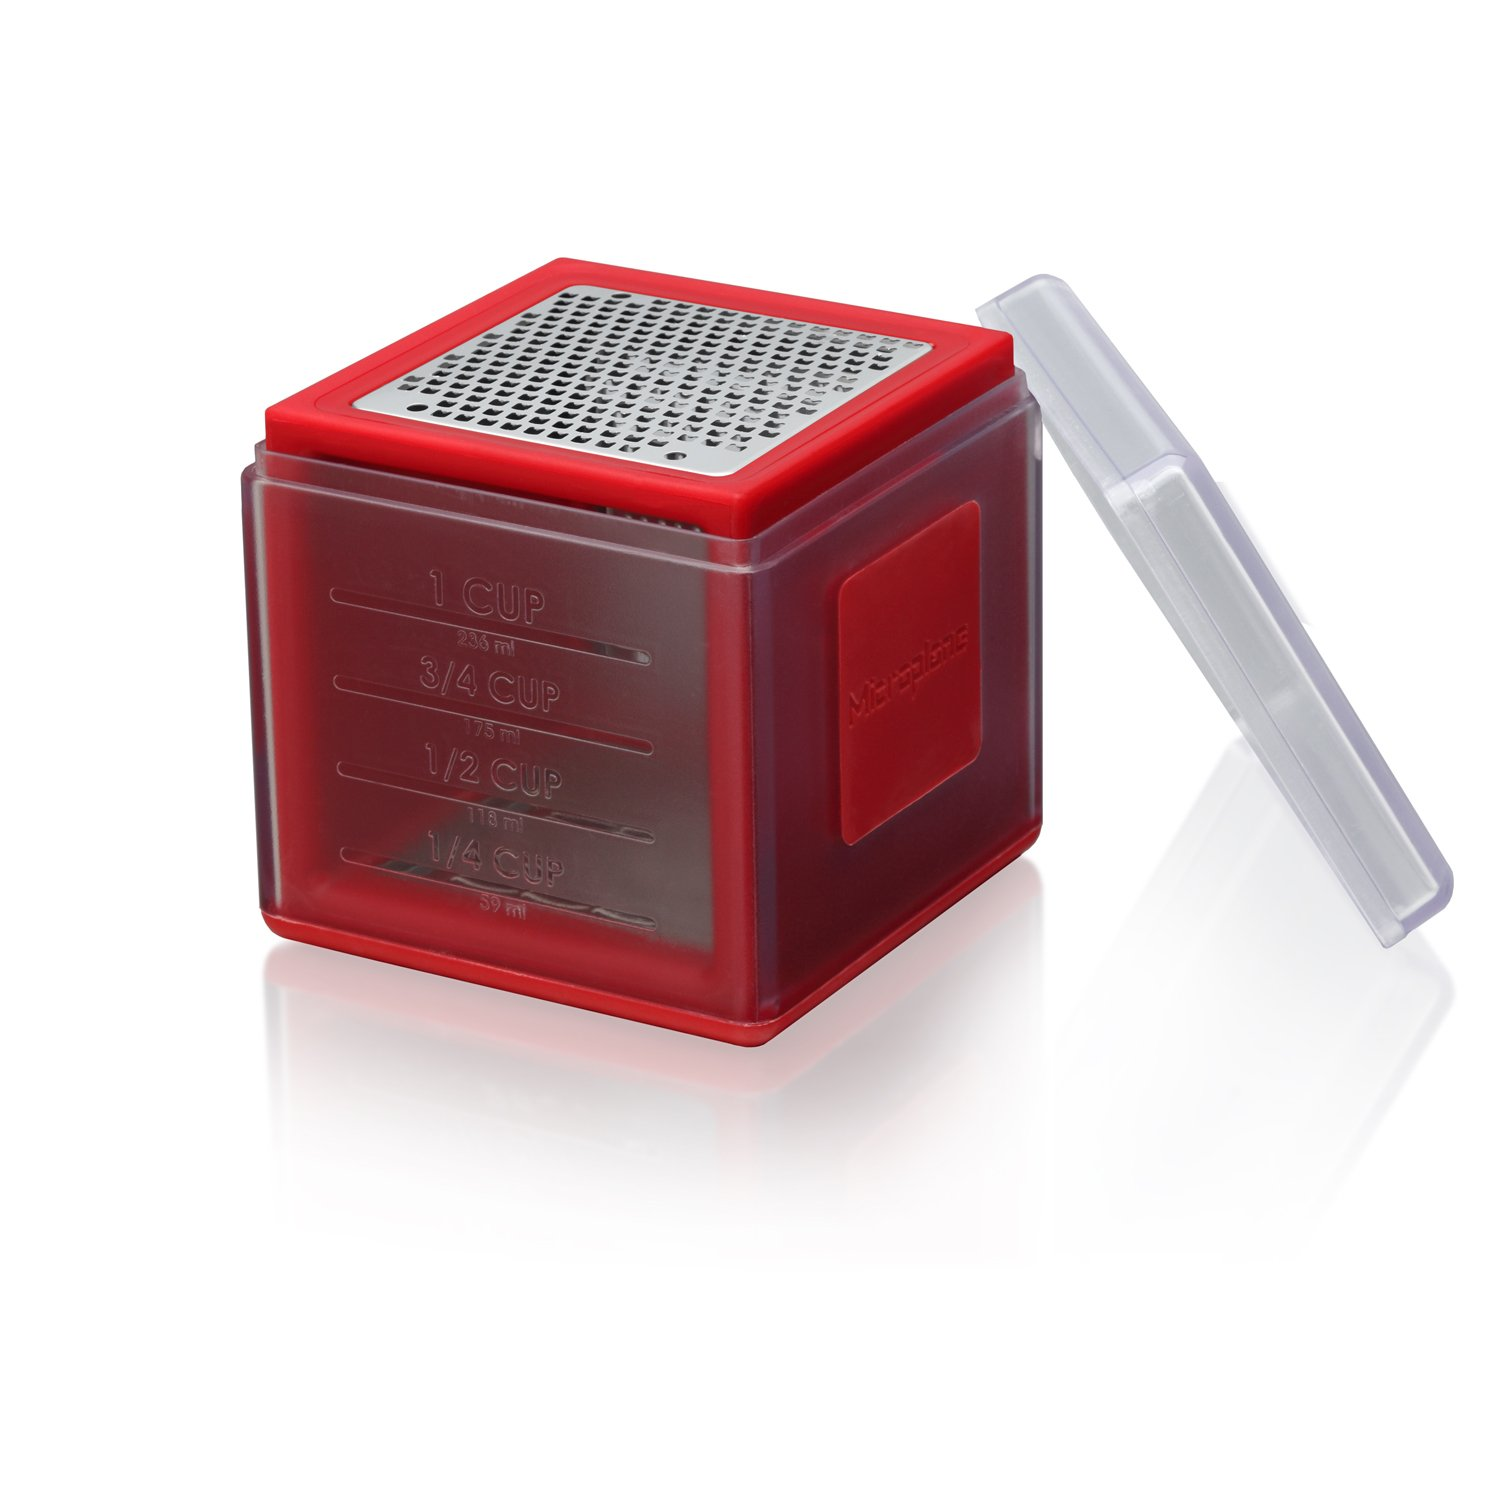 Microplane Mini Box Grater with Zester and Measuring Cup - Red